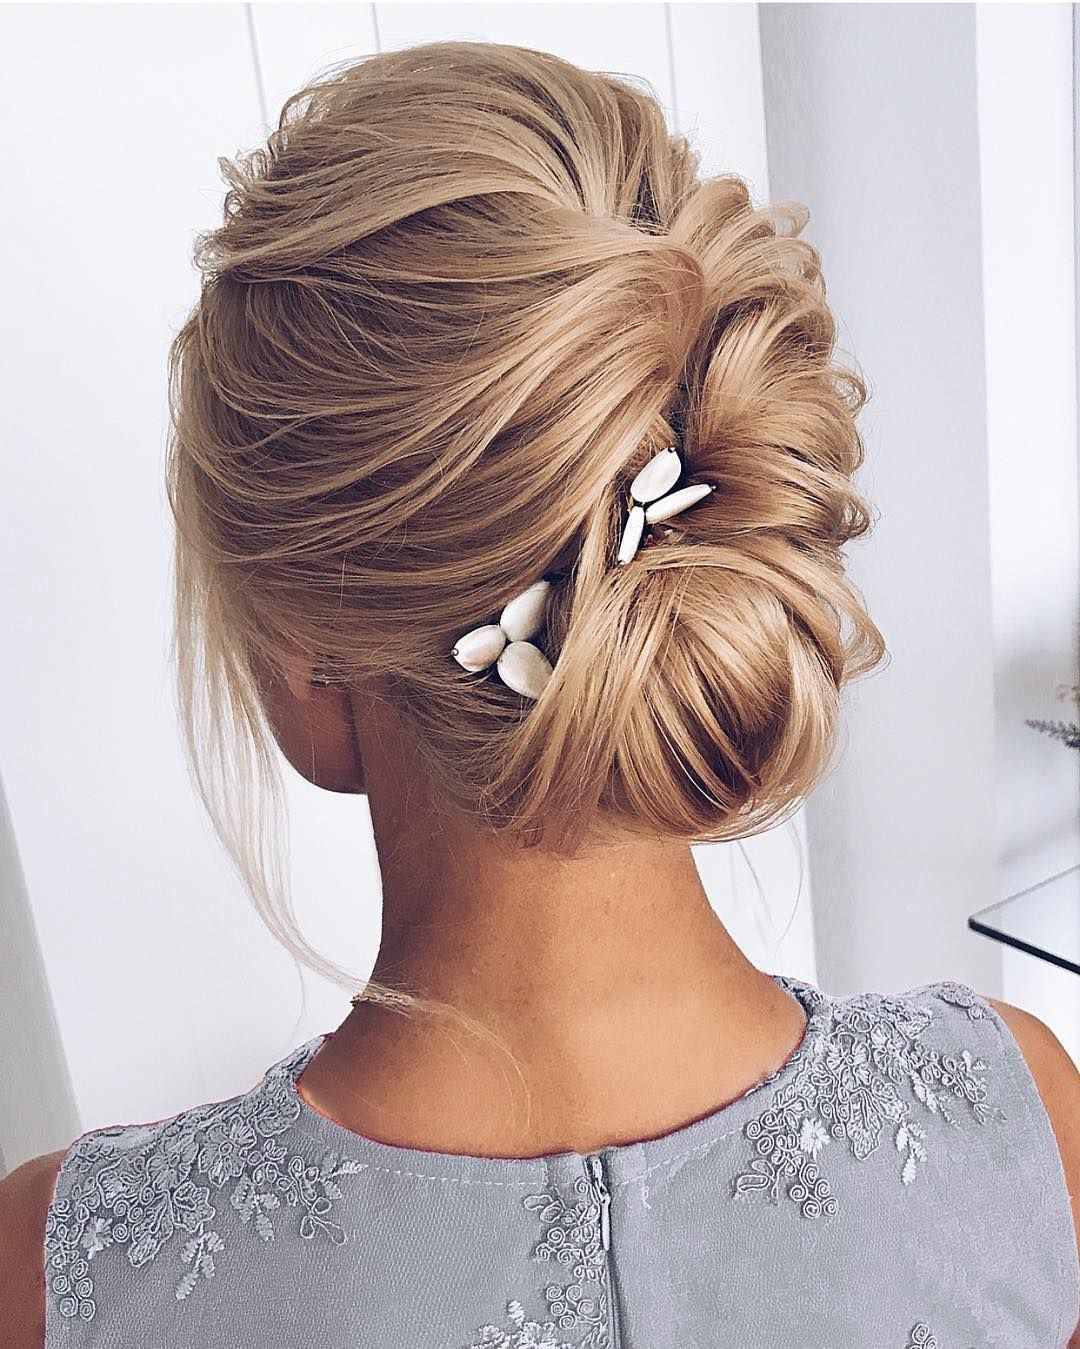 27 Gorgeous Wedding Hairstyles For Long Hair For 2020: Gorgeous Wedding Hair From Ceremony To Reception